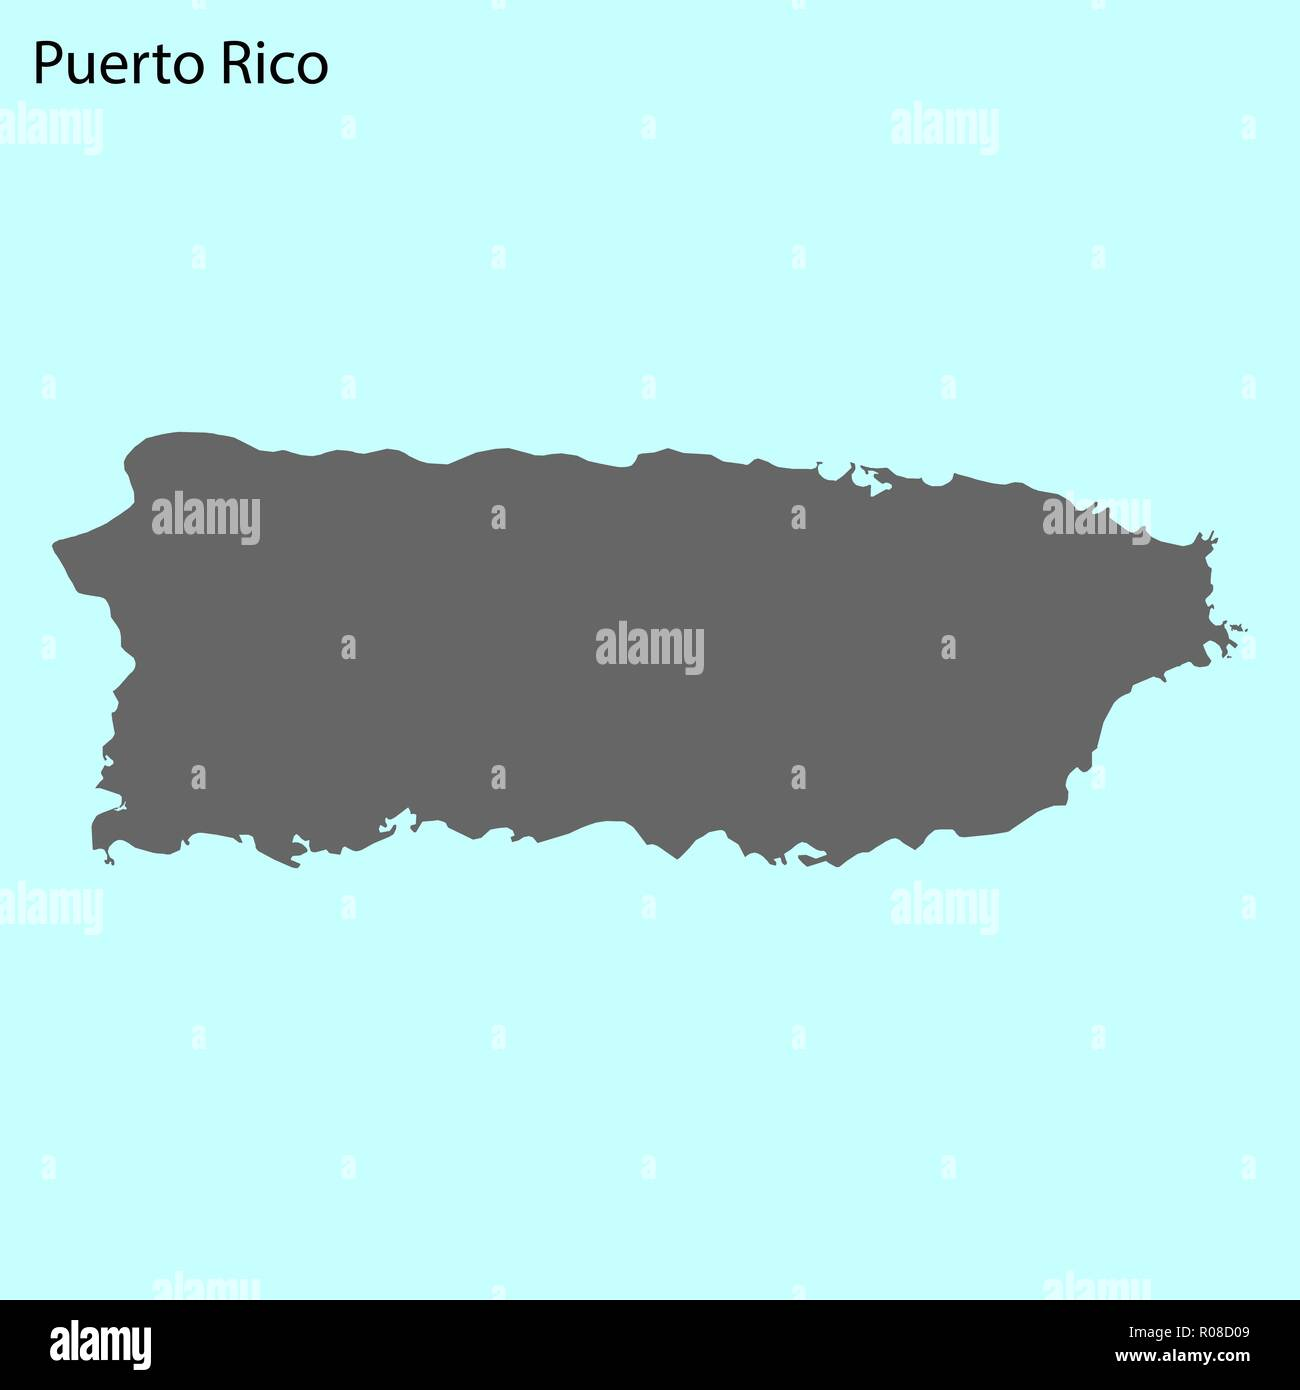 United States Map With Puerto Rico.High Quality Map Of Puerto Rico Is The Island Of United States Stock